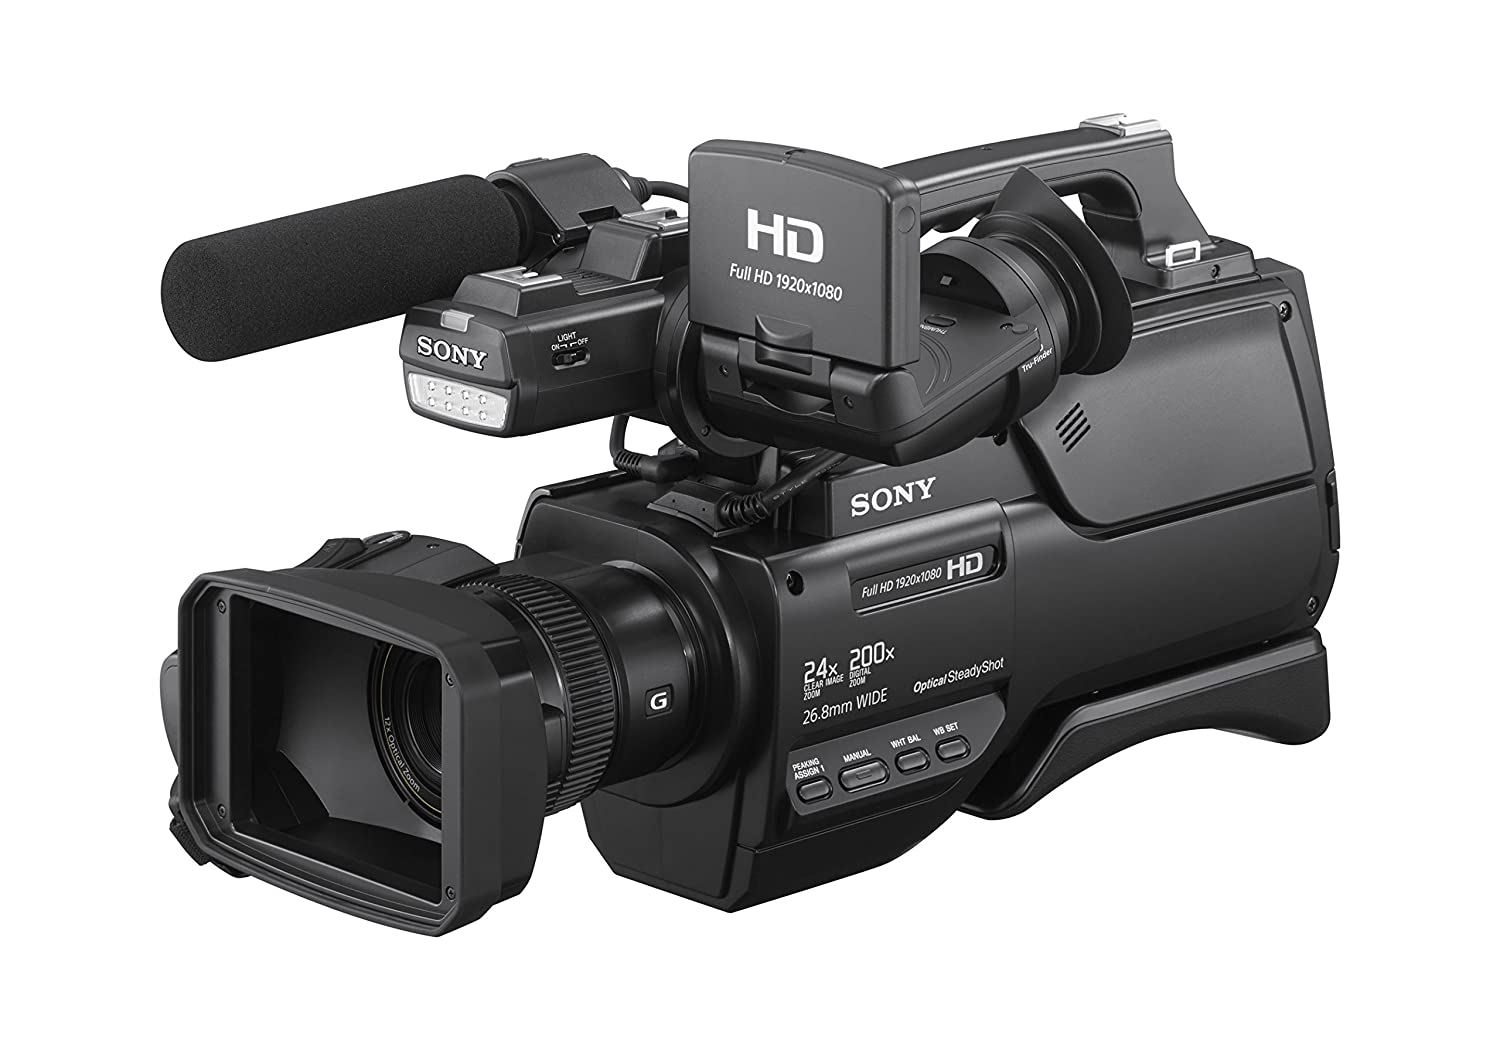 Top 10 Best Professional Camcorders (2020 Reviews & Buying Guide) 8